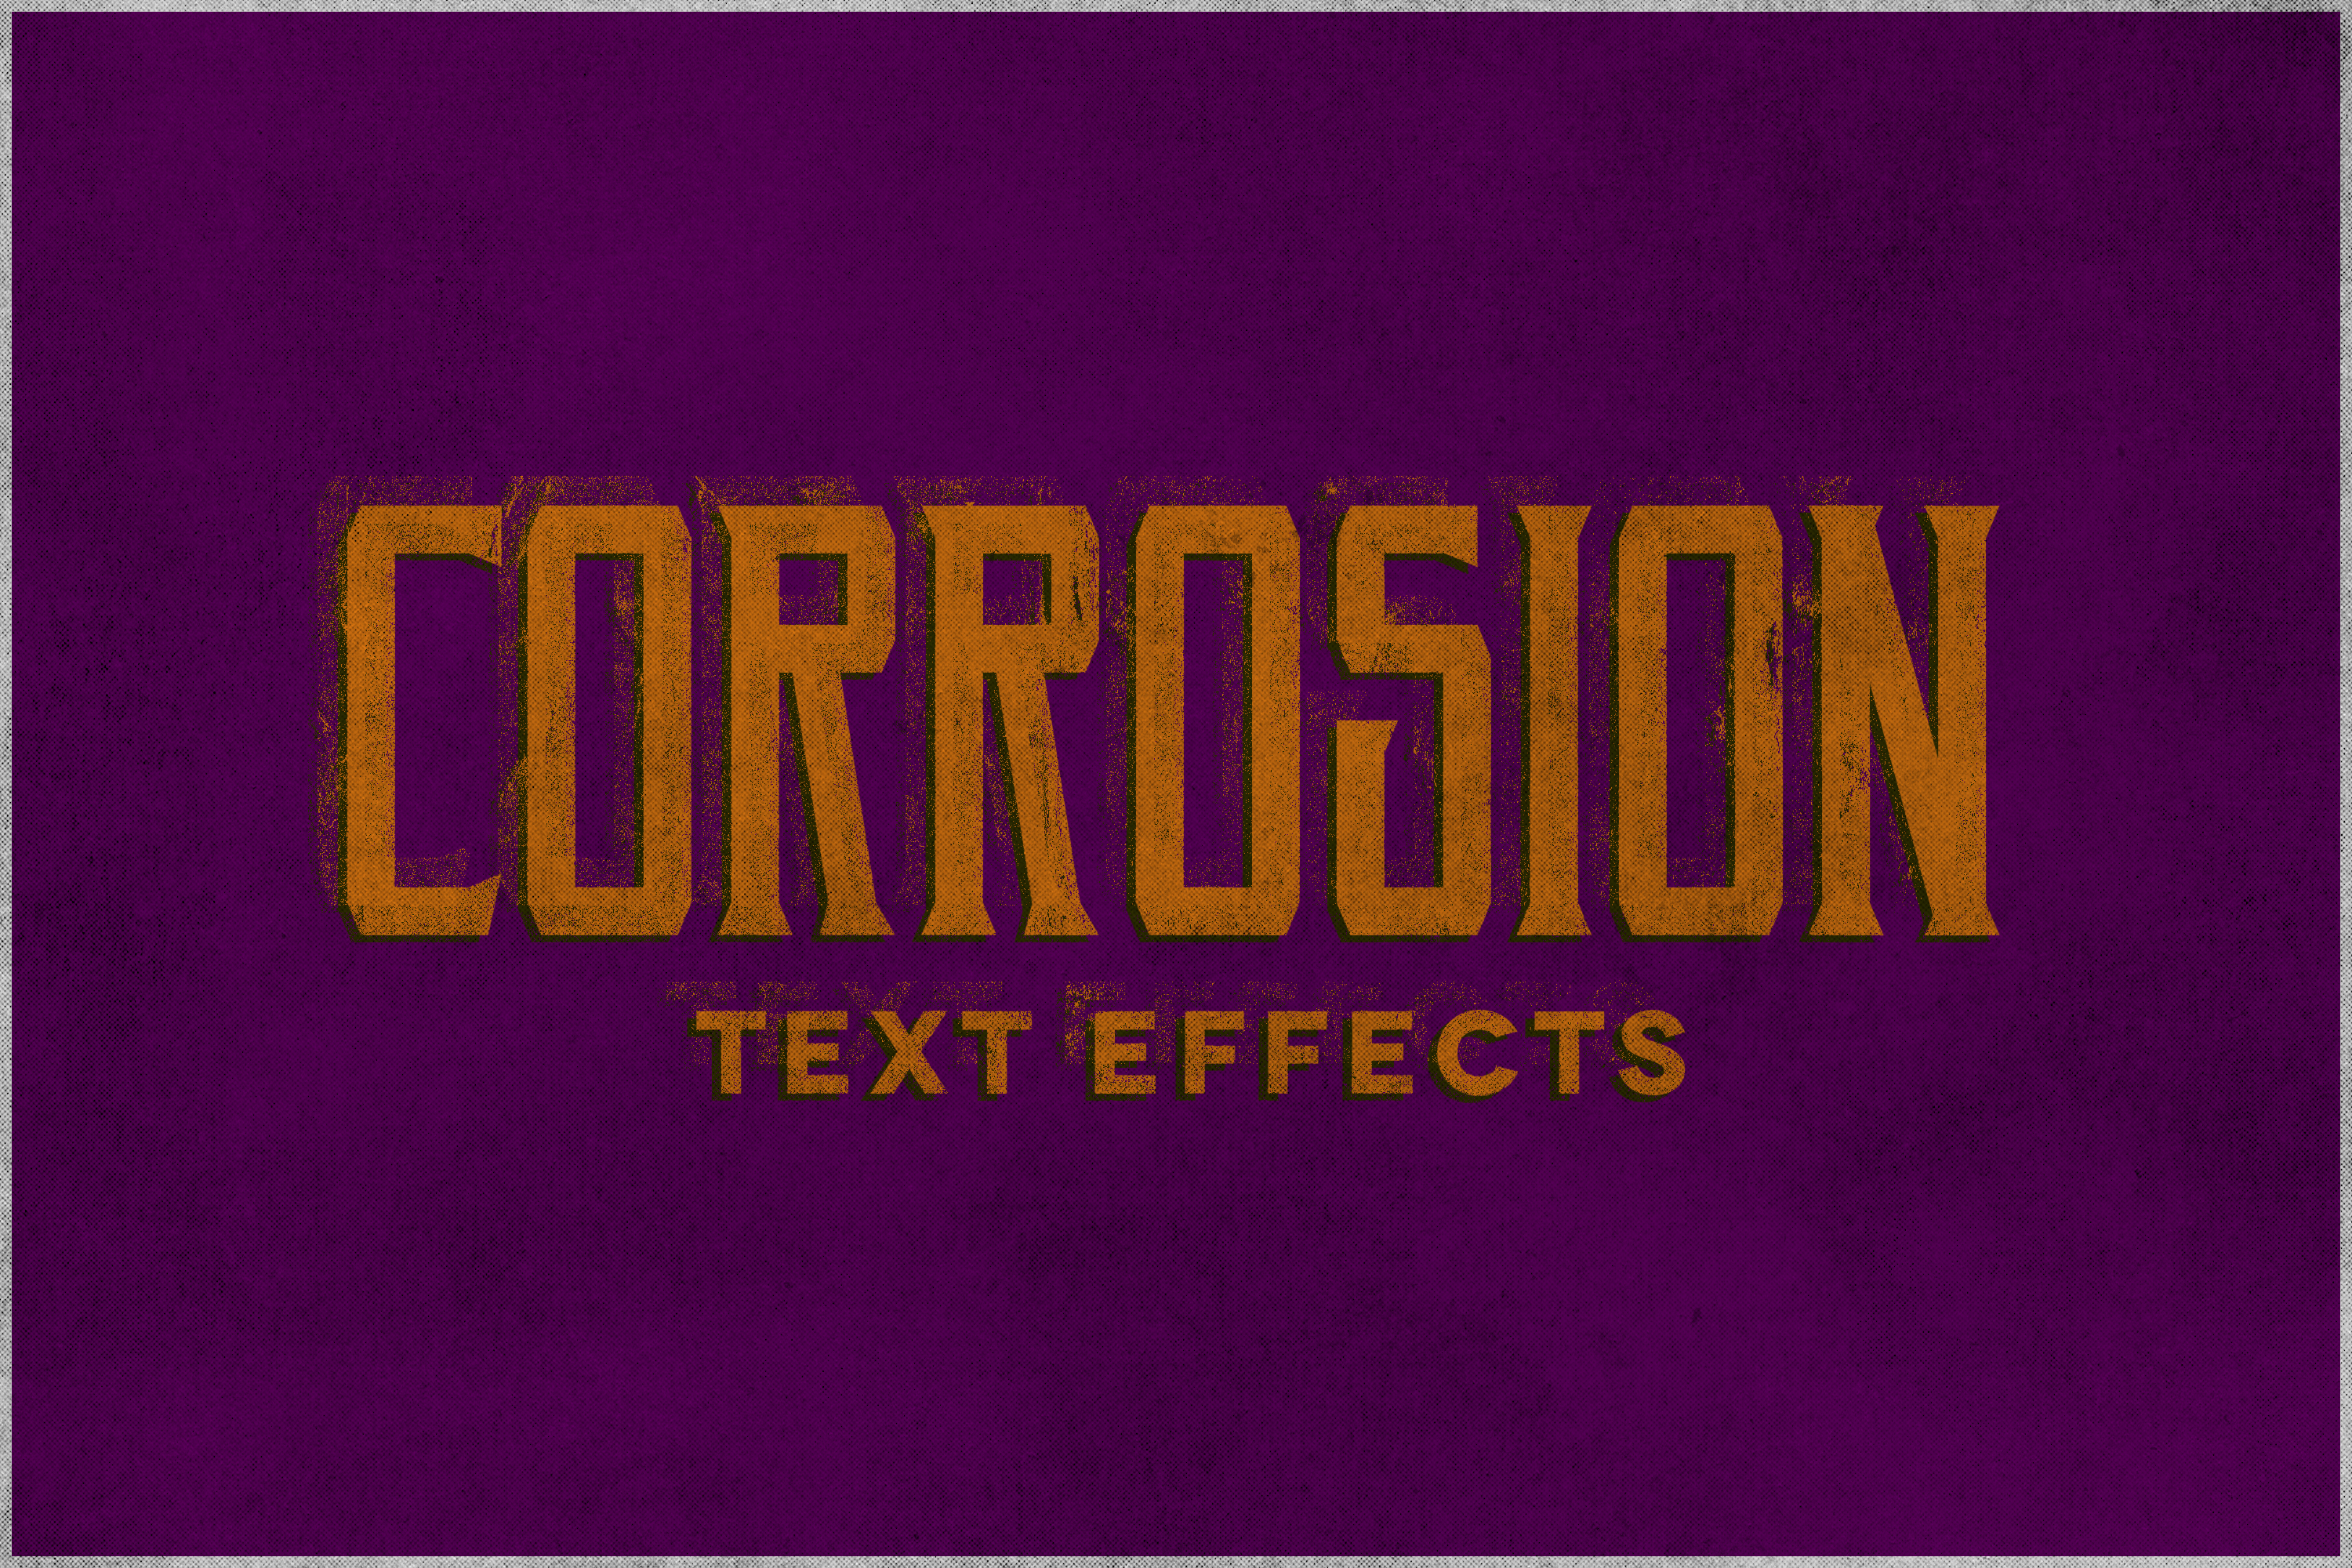 Corrosion - Vintage Text Effect example image 1